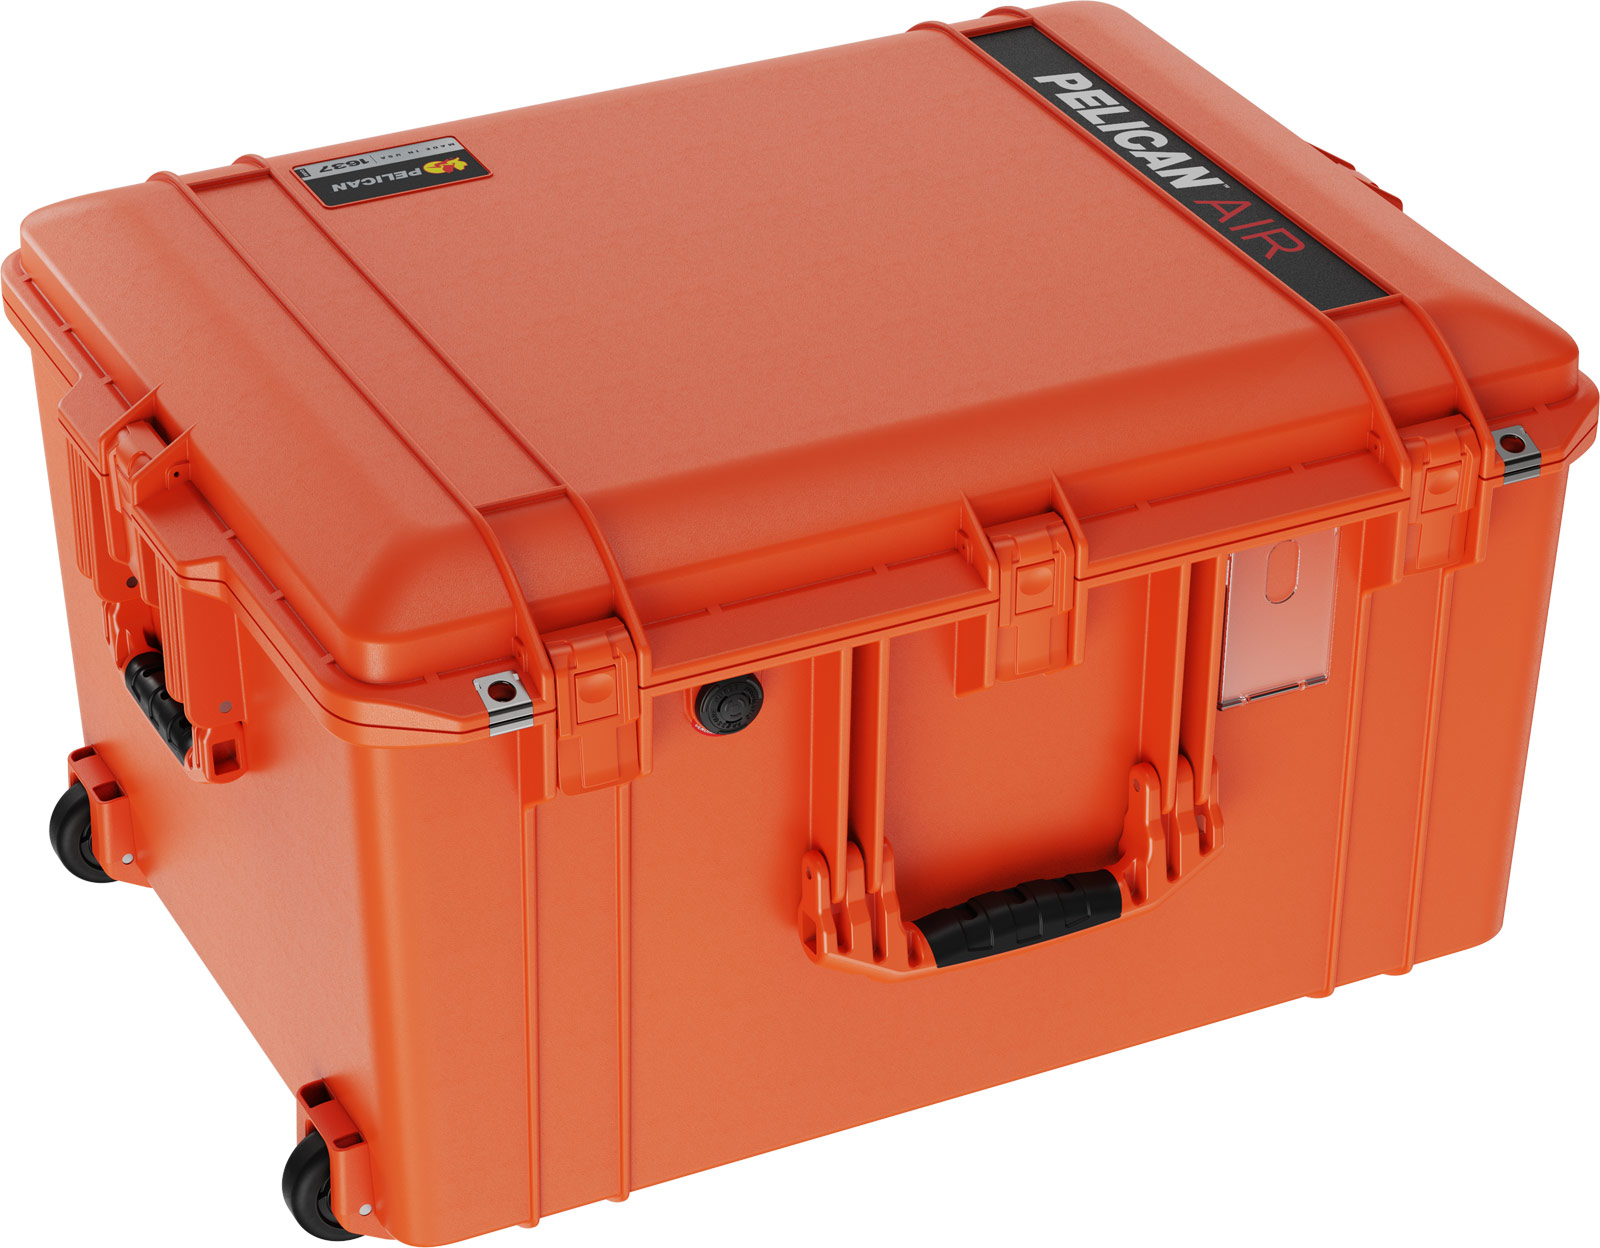 pelican 1637 air case orange cases rolling